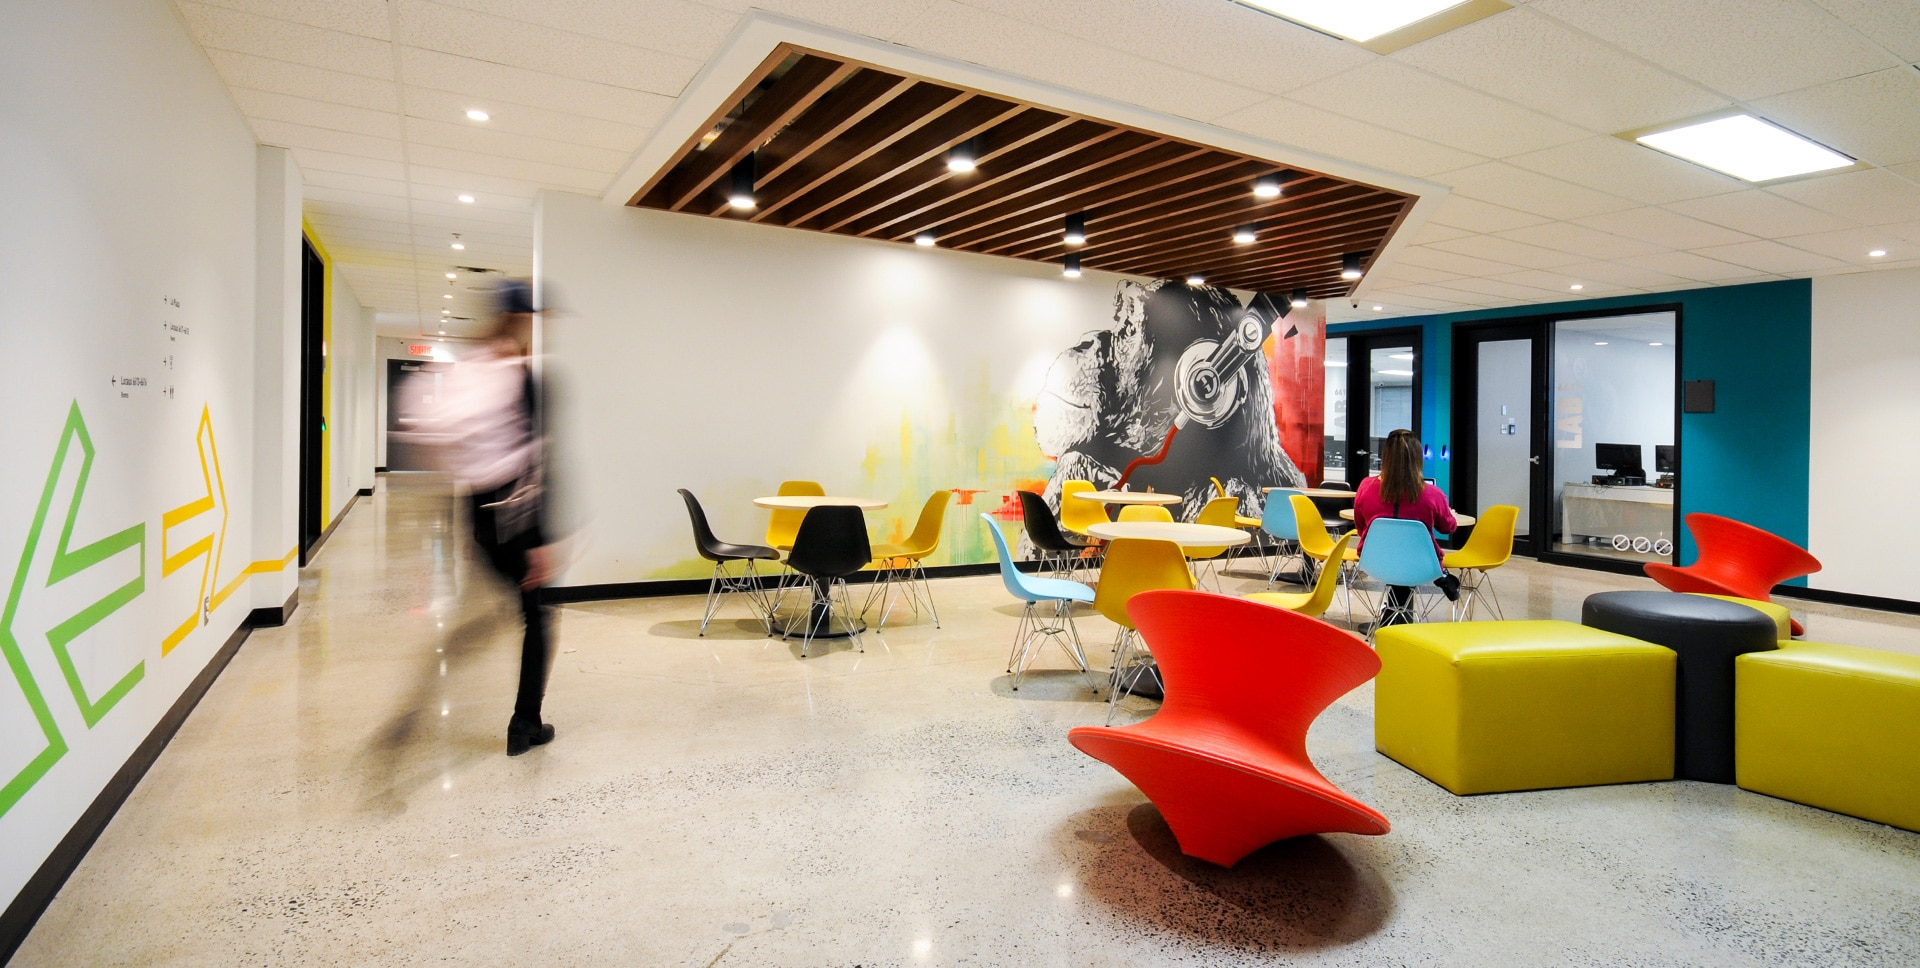 Lounge and art wall at LaSalle College in Montreal designed by VAD